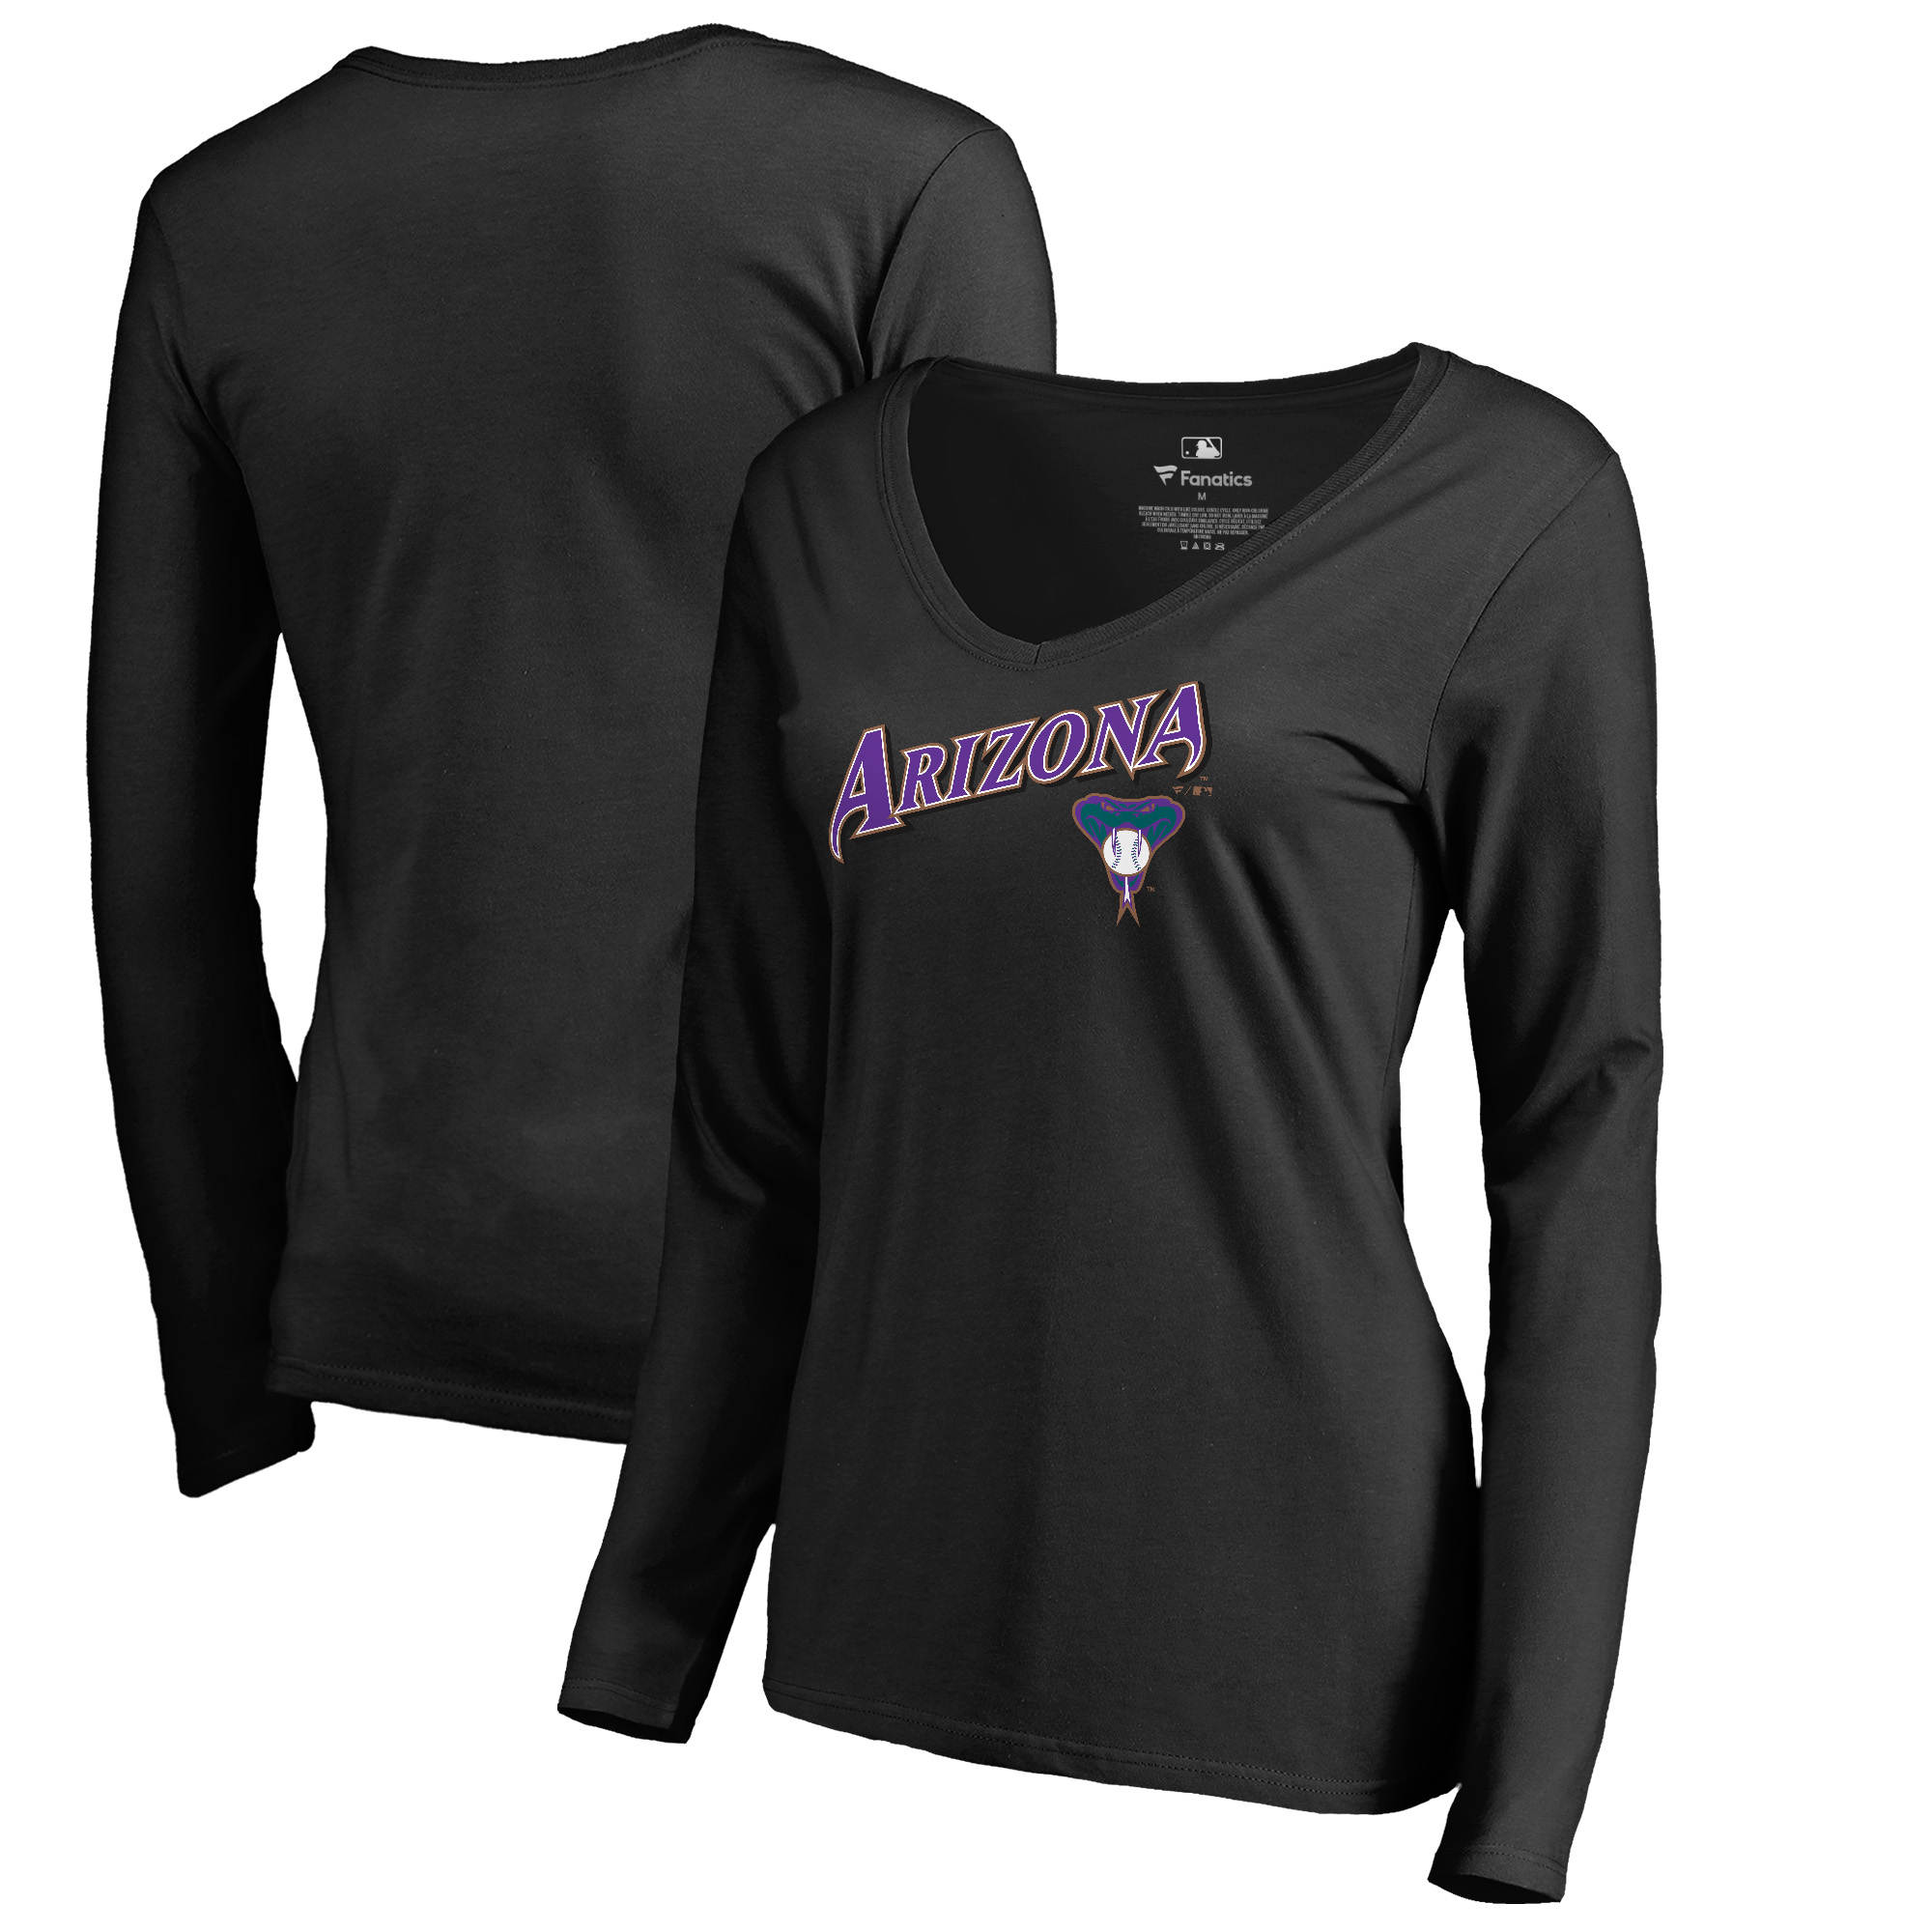 Arizona Diamondbacks Fanatics Branded Women's Cooperstown Collection Wahconah Long Sleeve V-Neck T-Shirt - Black